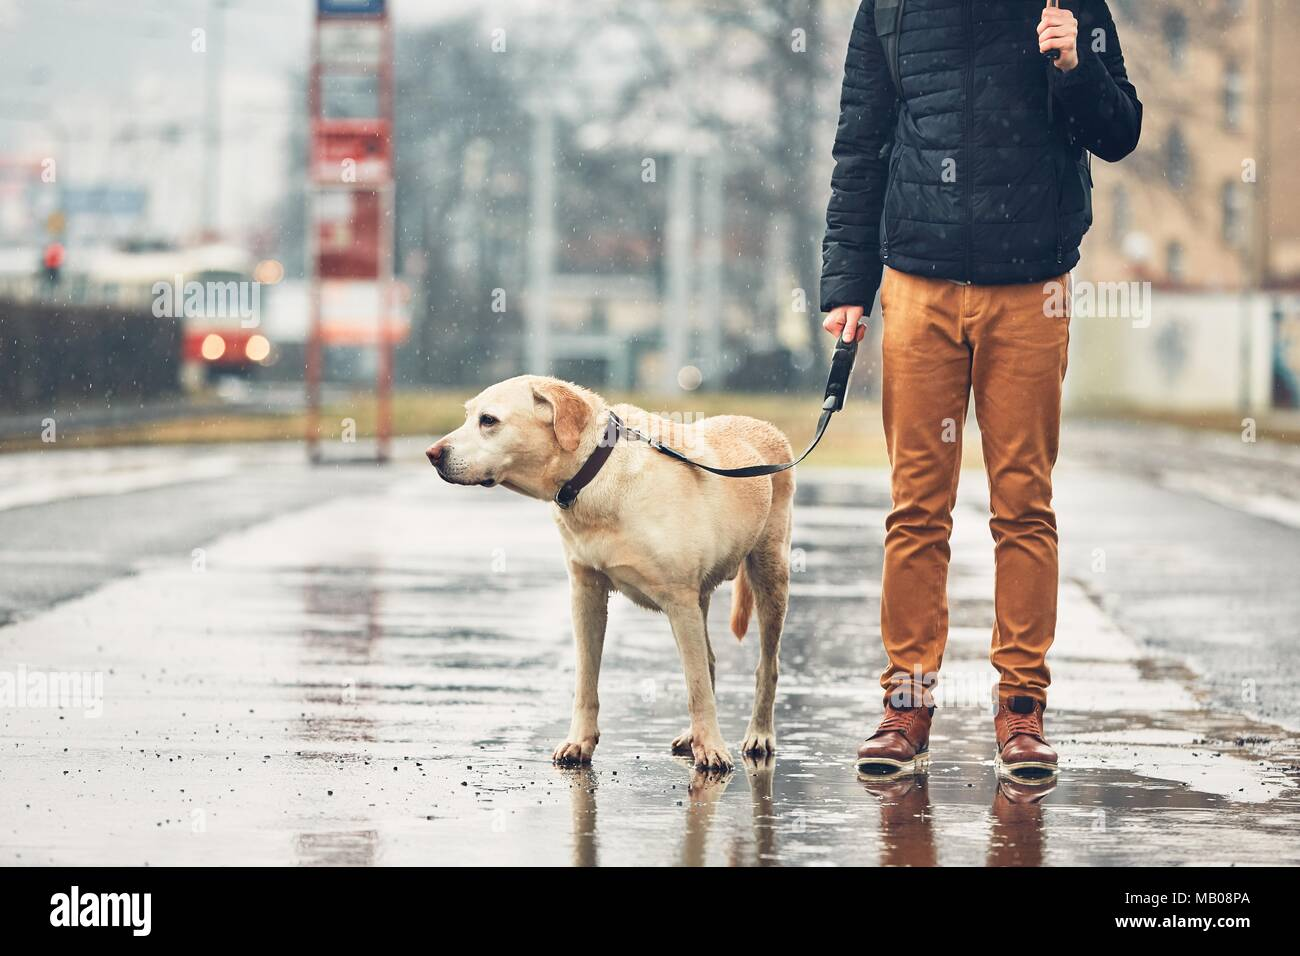 Gloomy weather in the city. Man with his dog (labrador retriever) walking in rain on the street. Prague, Czech Republic. - Stock Image